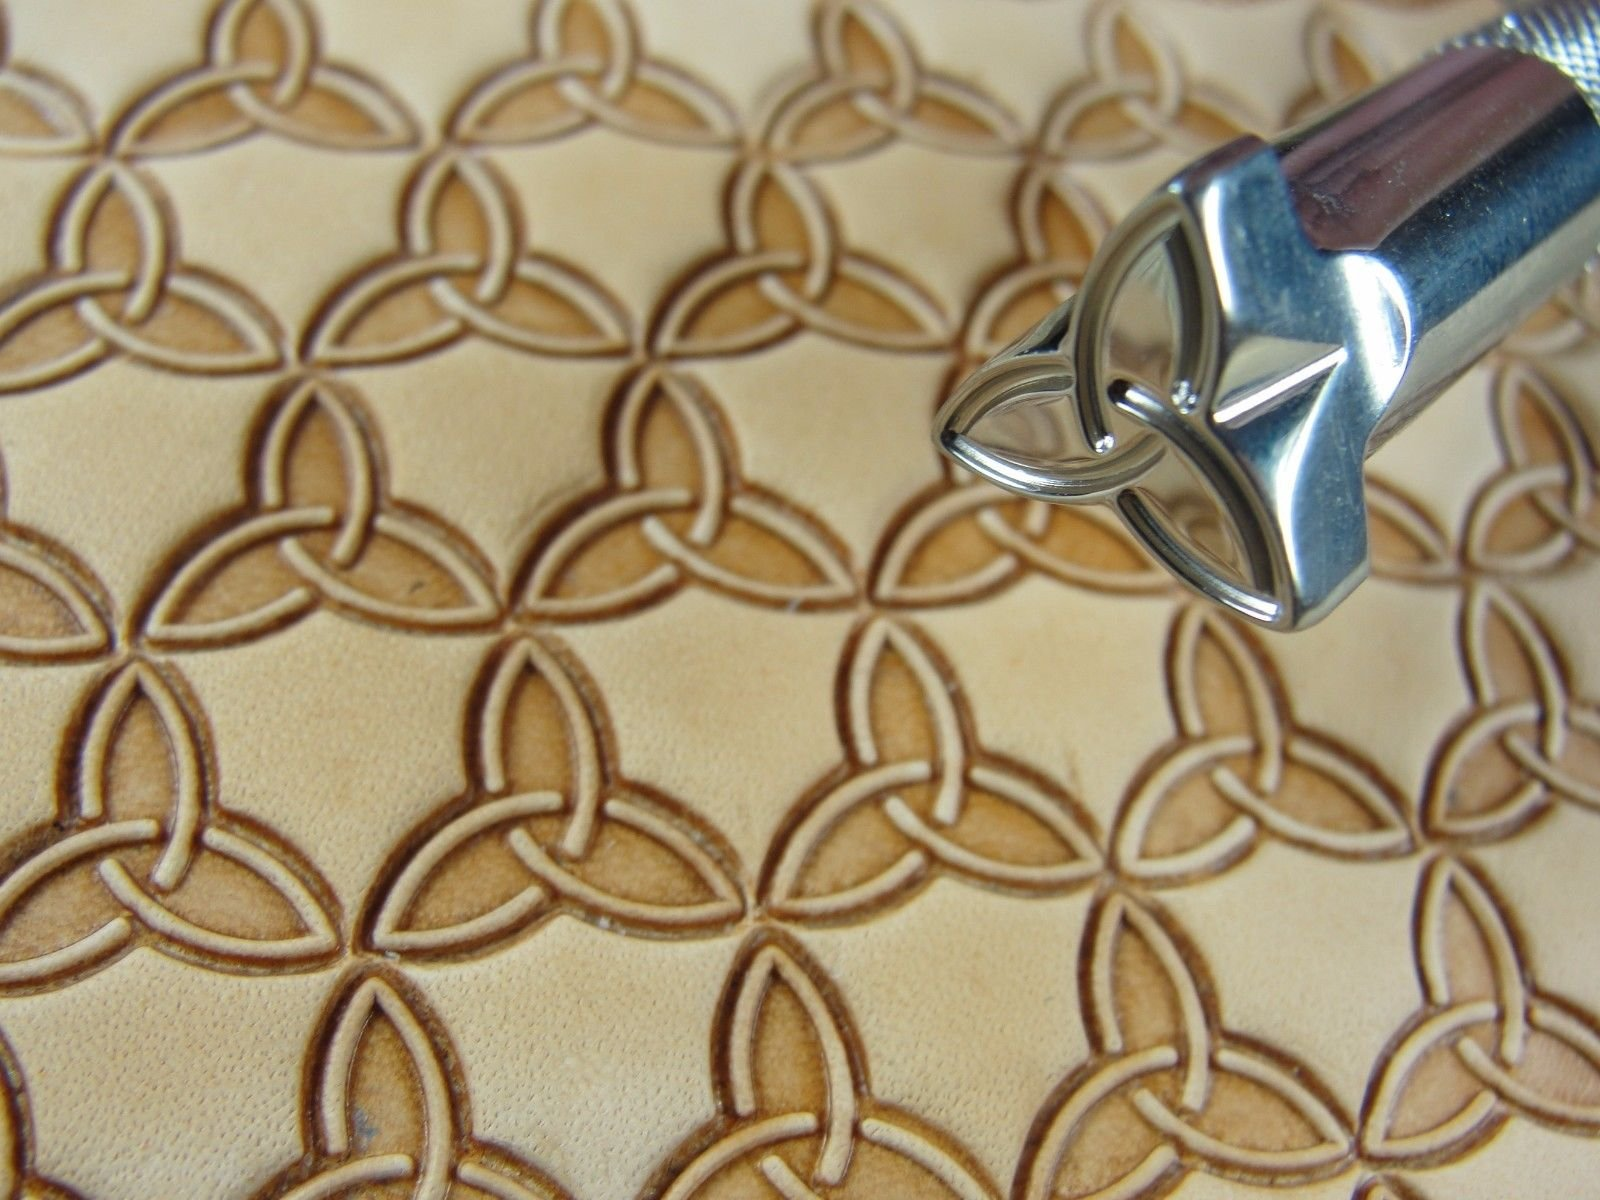 Stainless Steel Barry King - #3 Celtic Snowflake Geometric Stamp (Leather Tool)